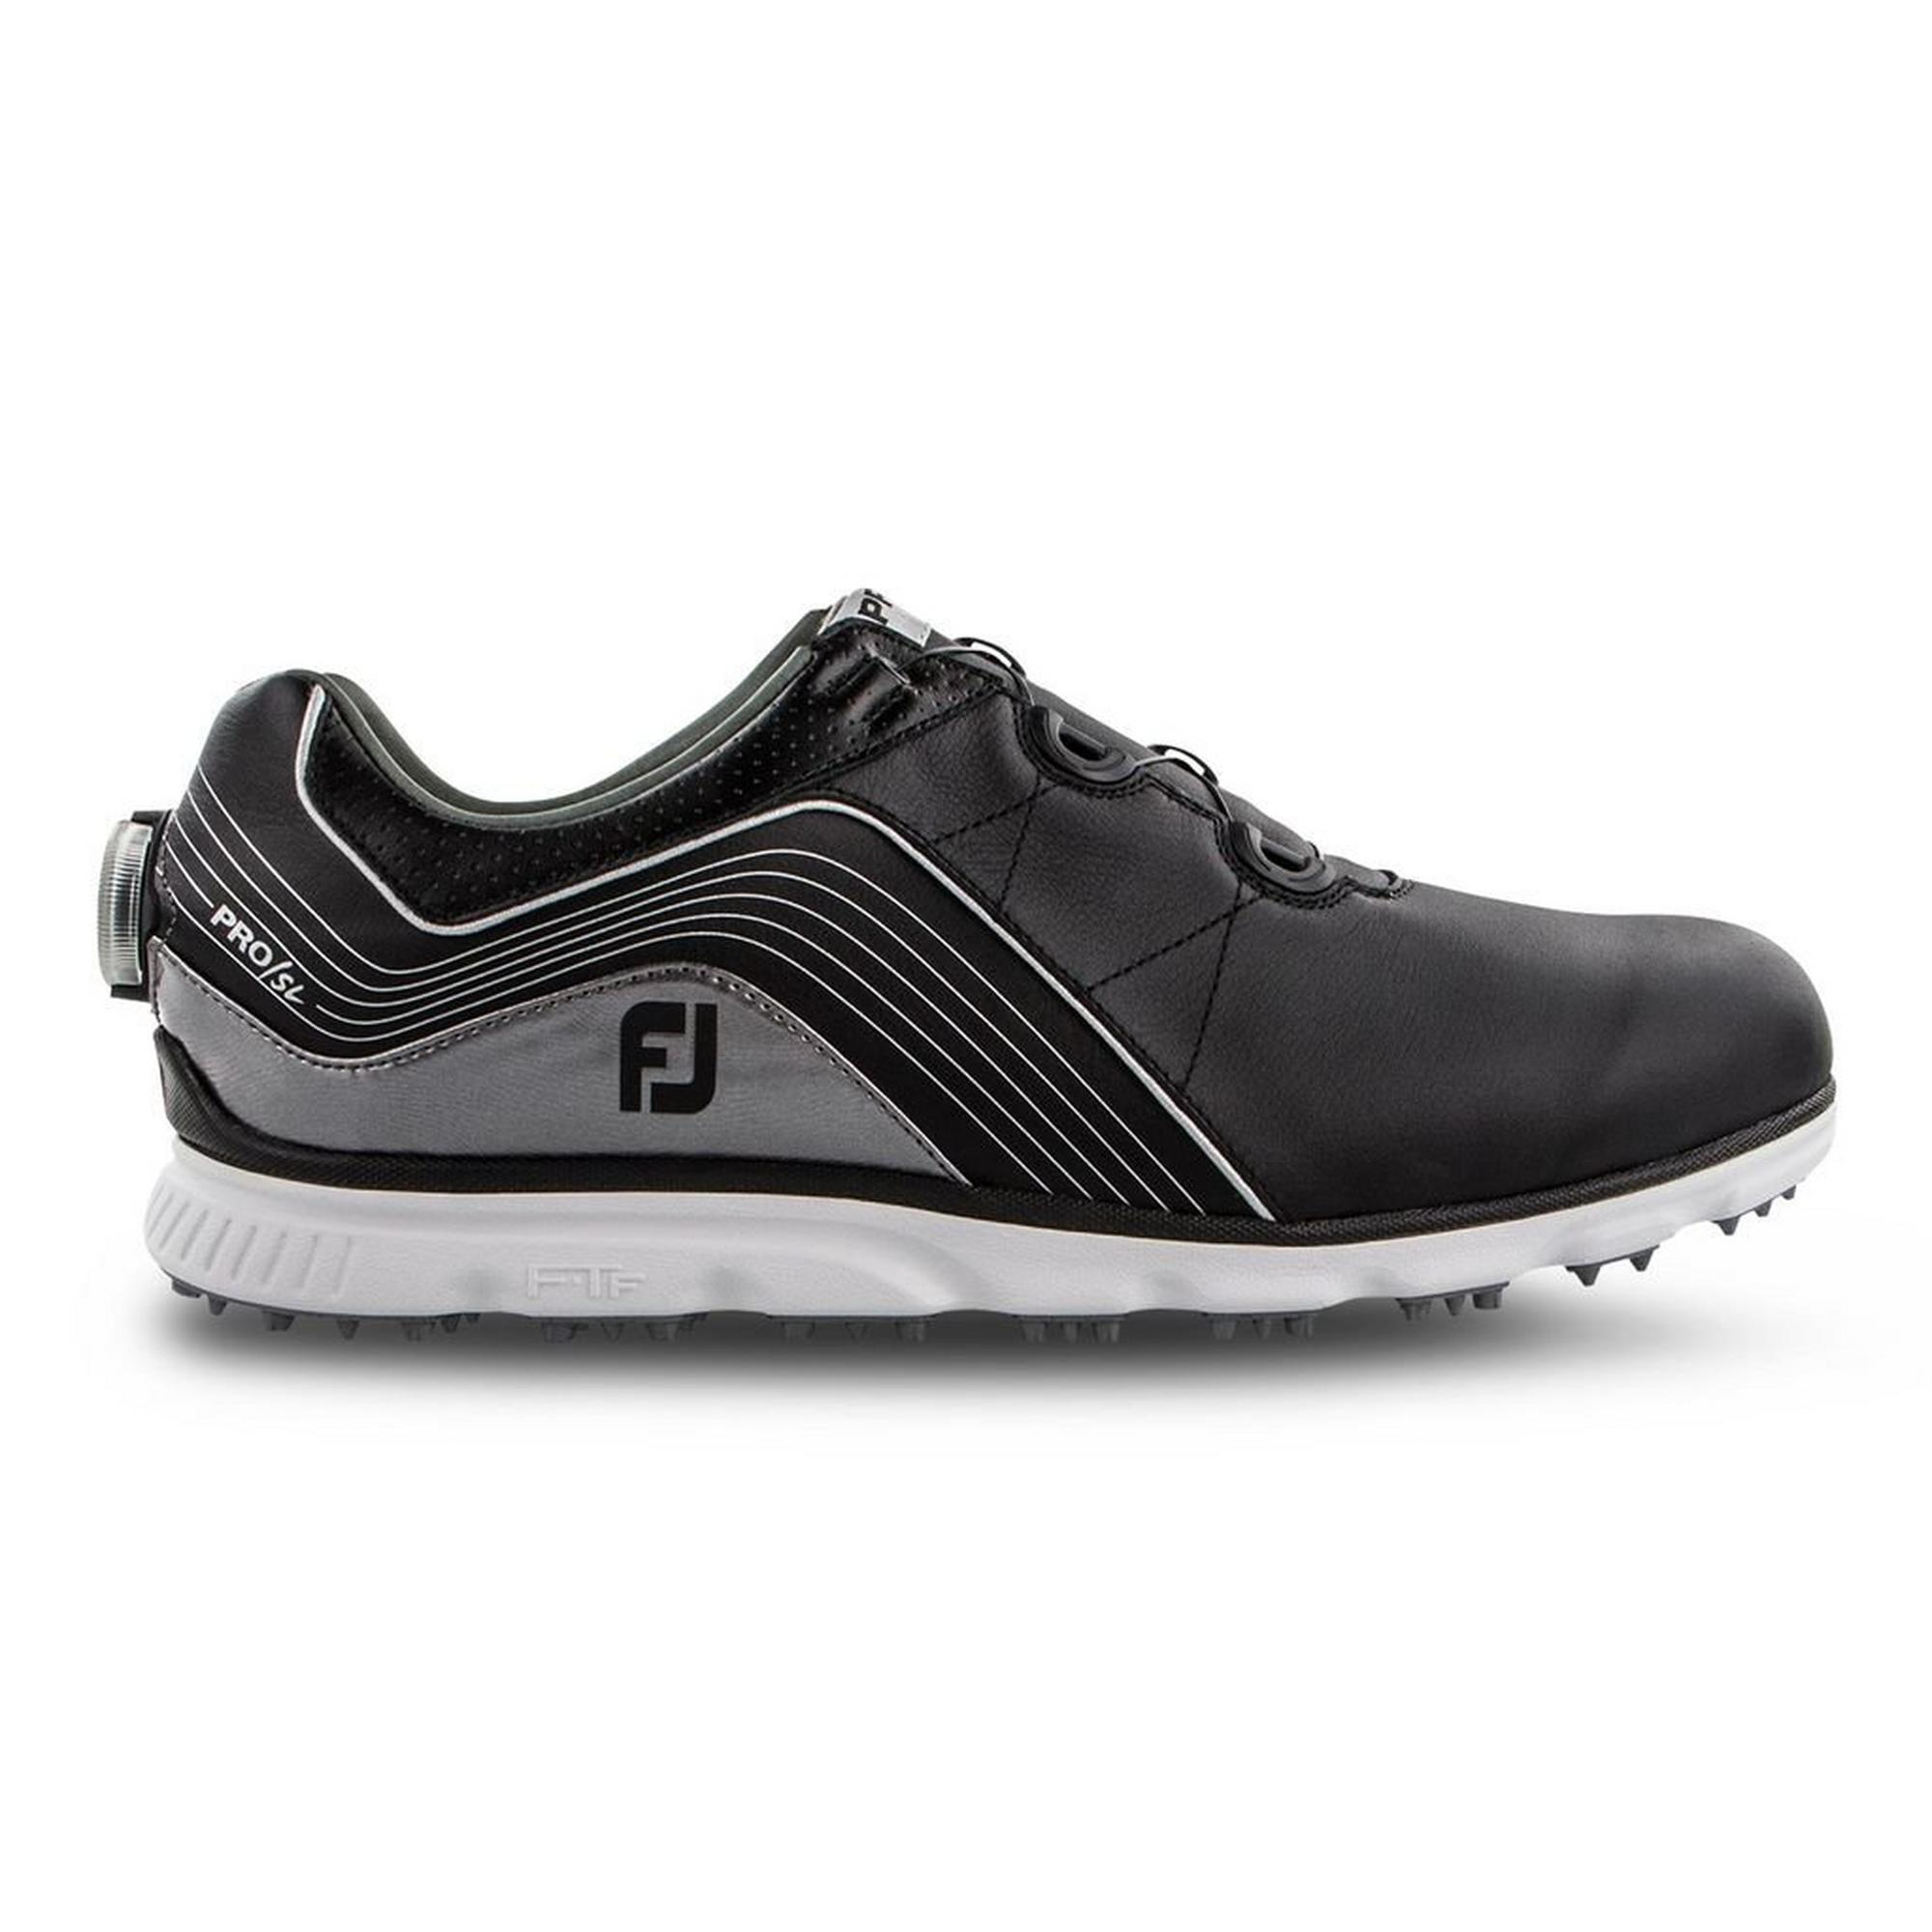 Men's Pro SL Boa Spikeless Golf Shoe - BLACK/GREY